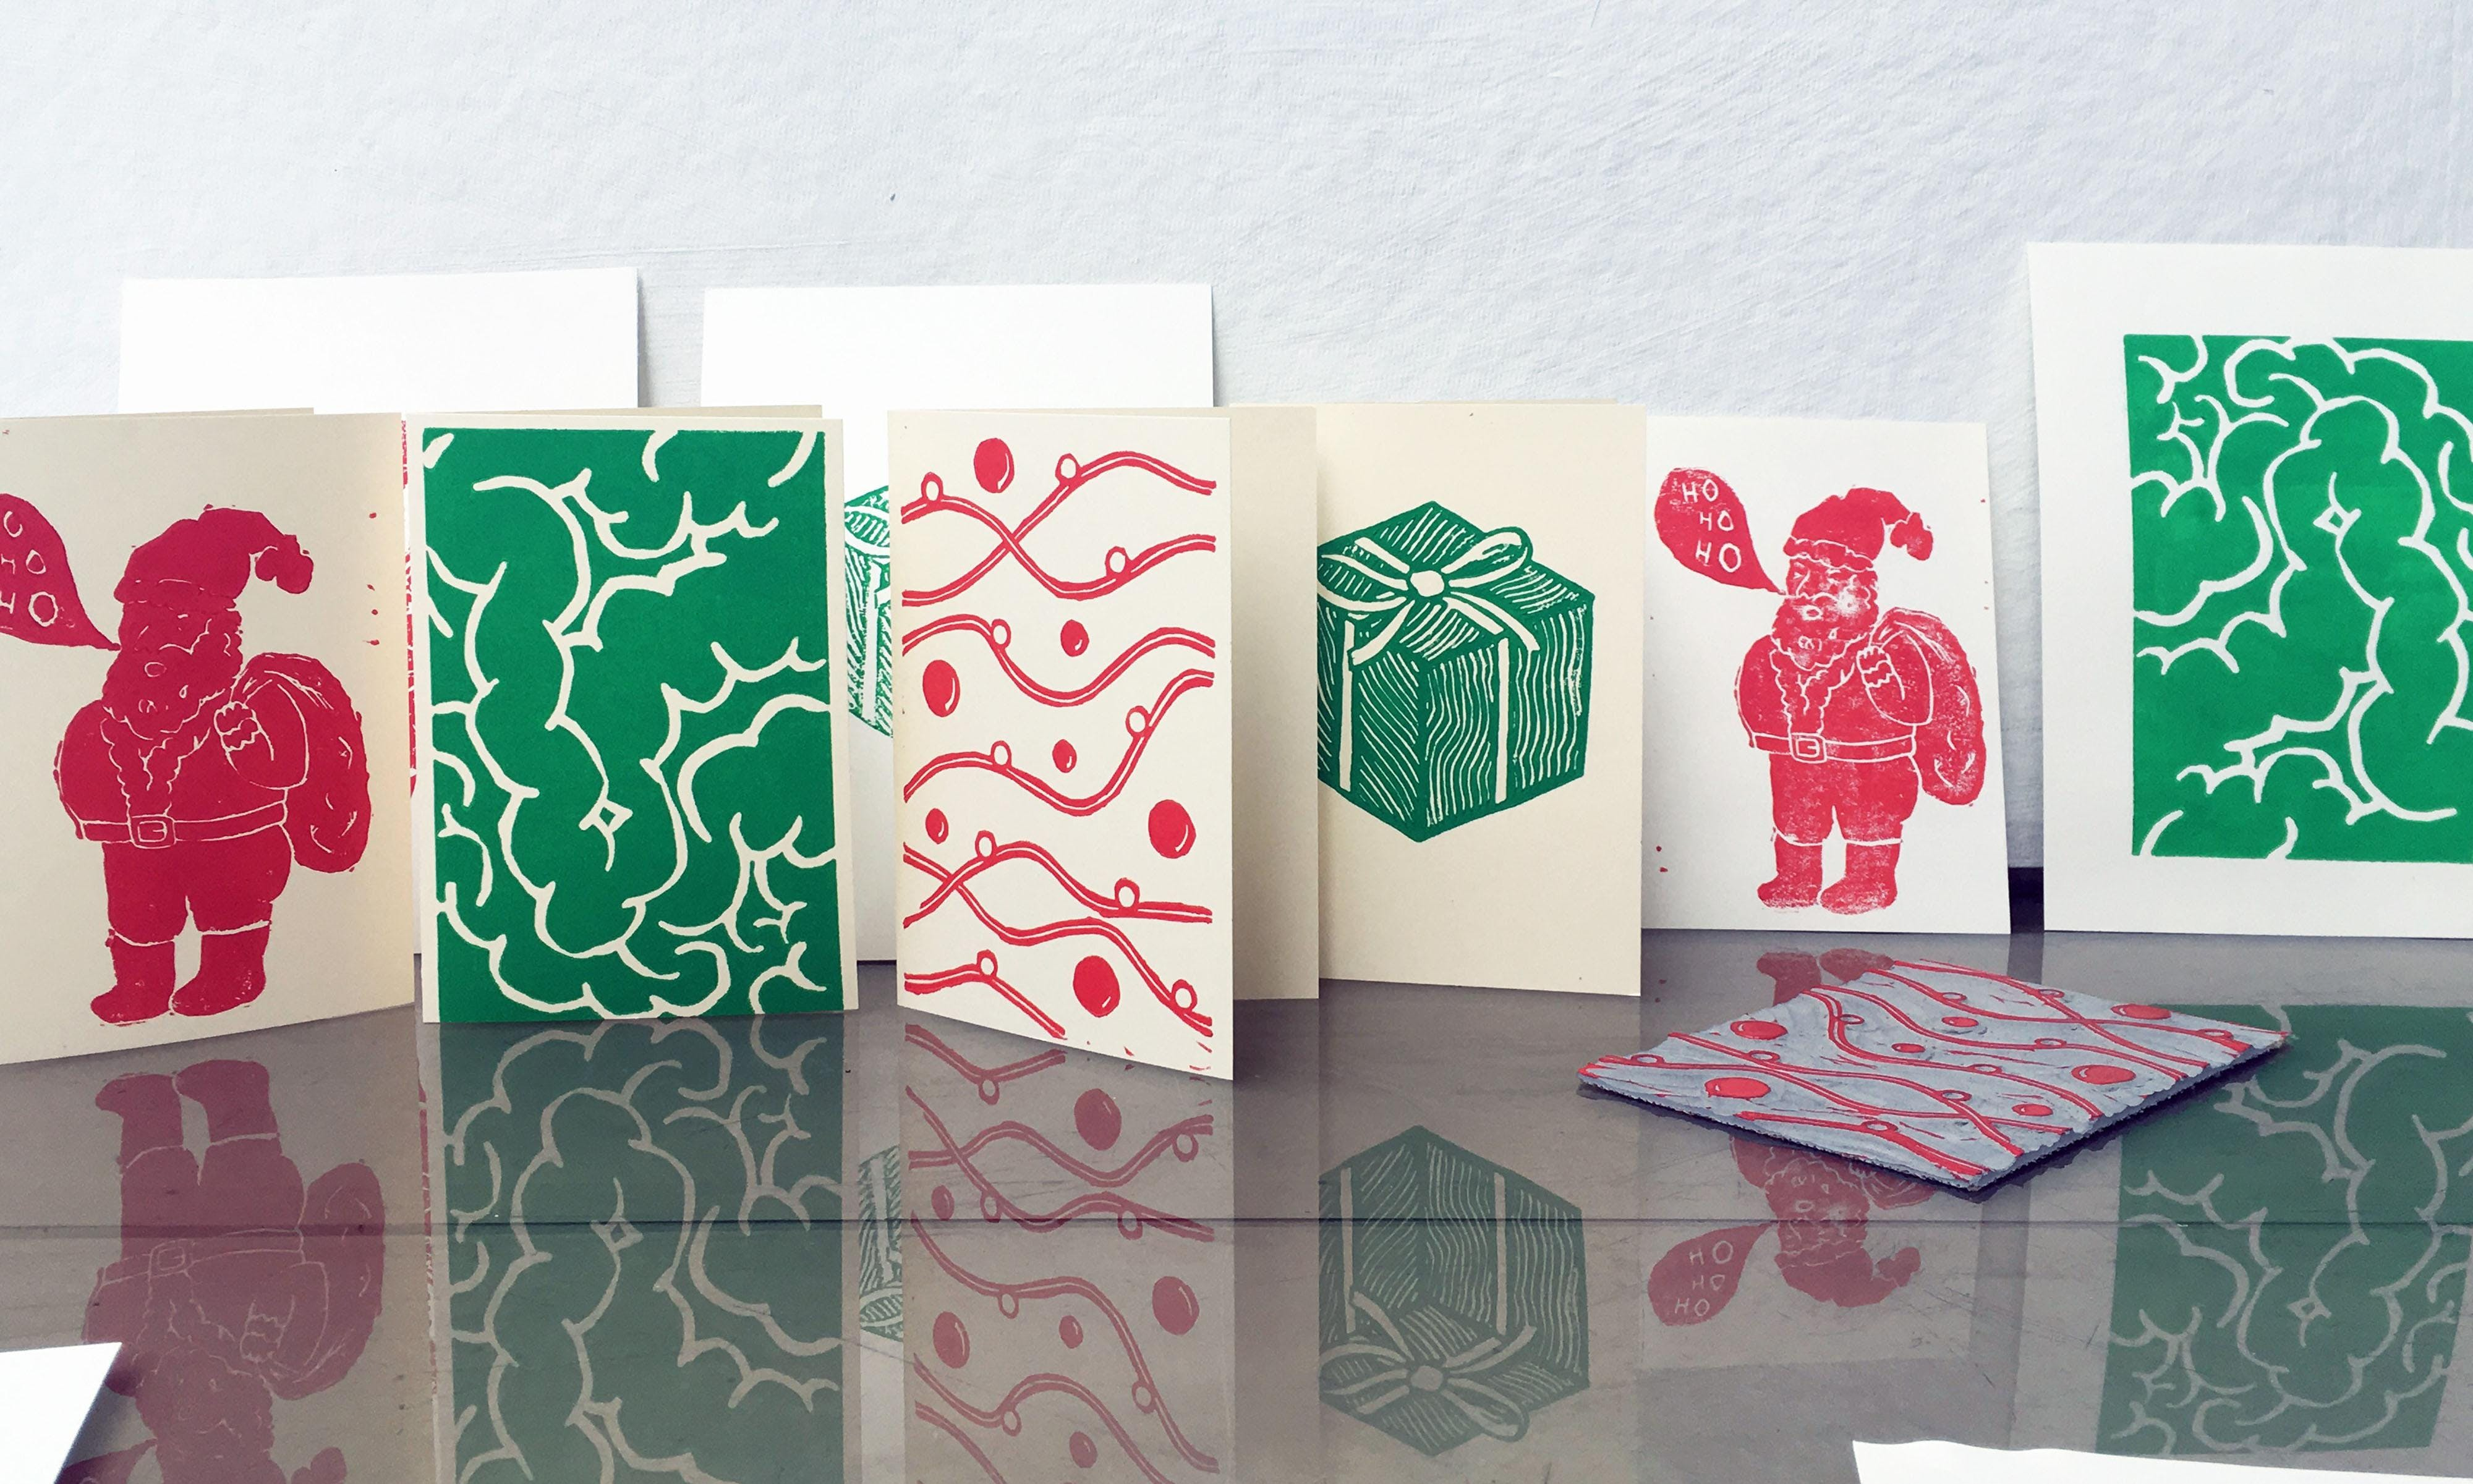 Lino Printed Christmas Cards with Temple Prints at Studio 73, London